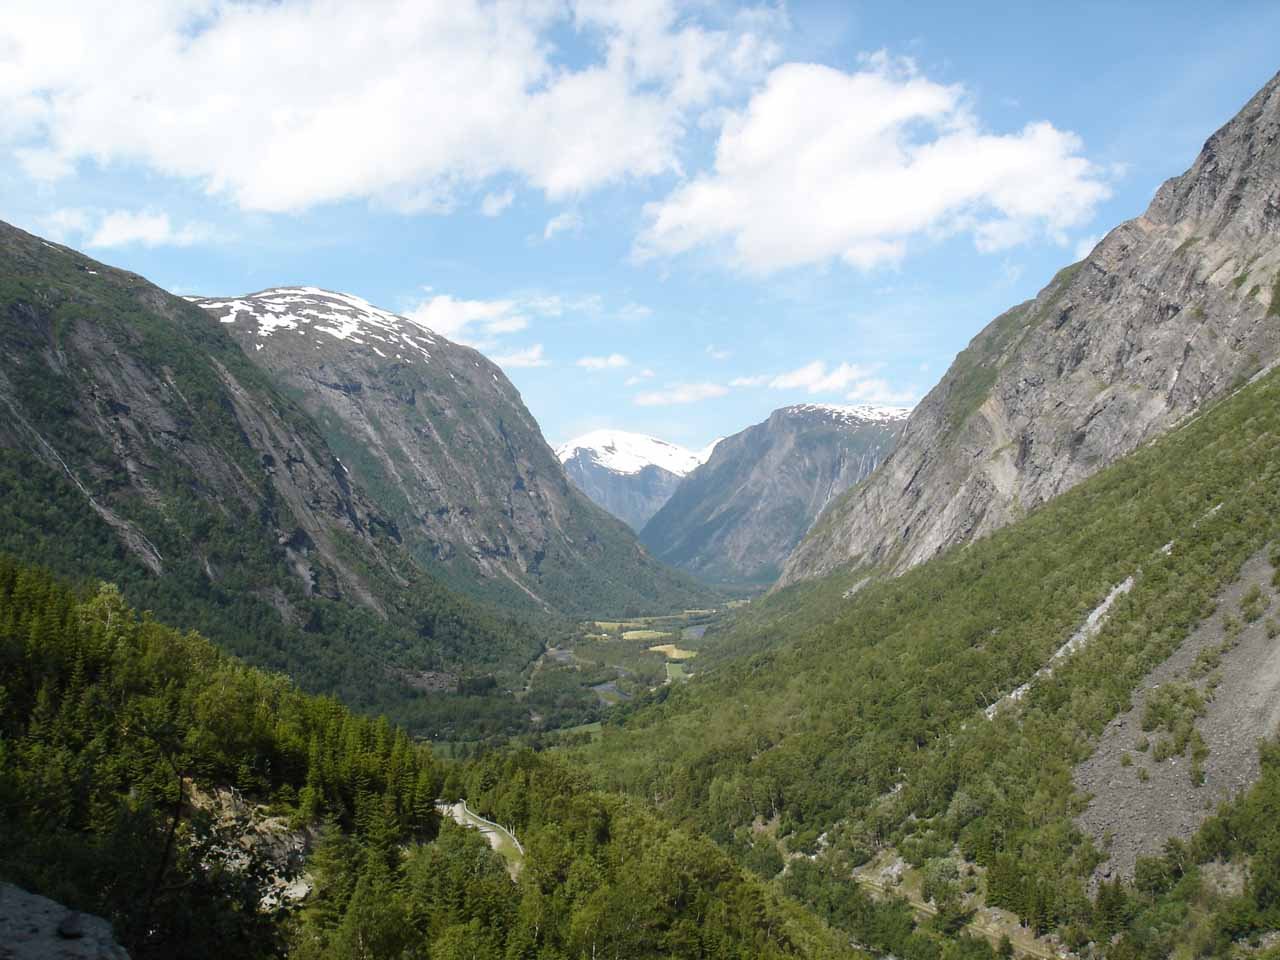 Looking back into the classically U-shaped Eikesdalen from the Aursjøvegen Road